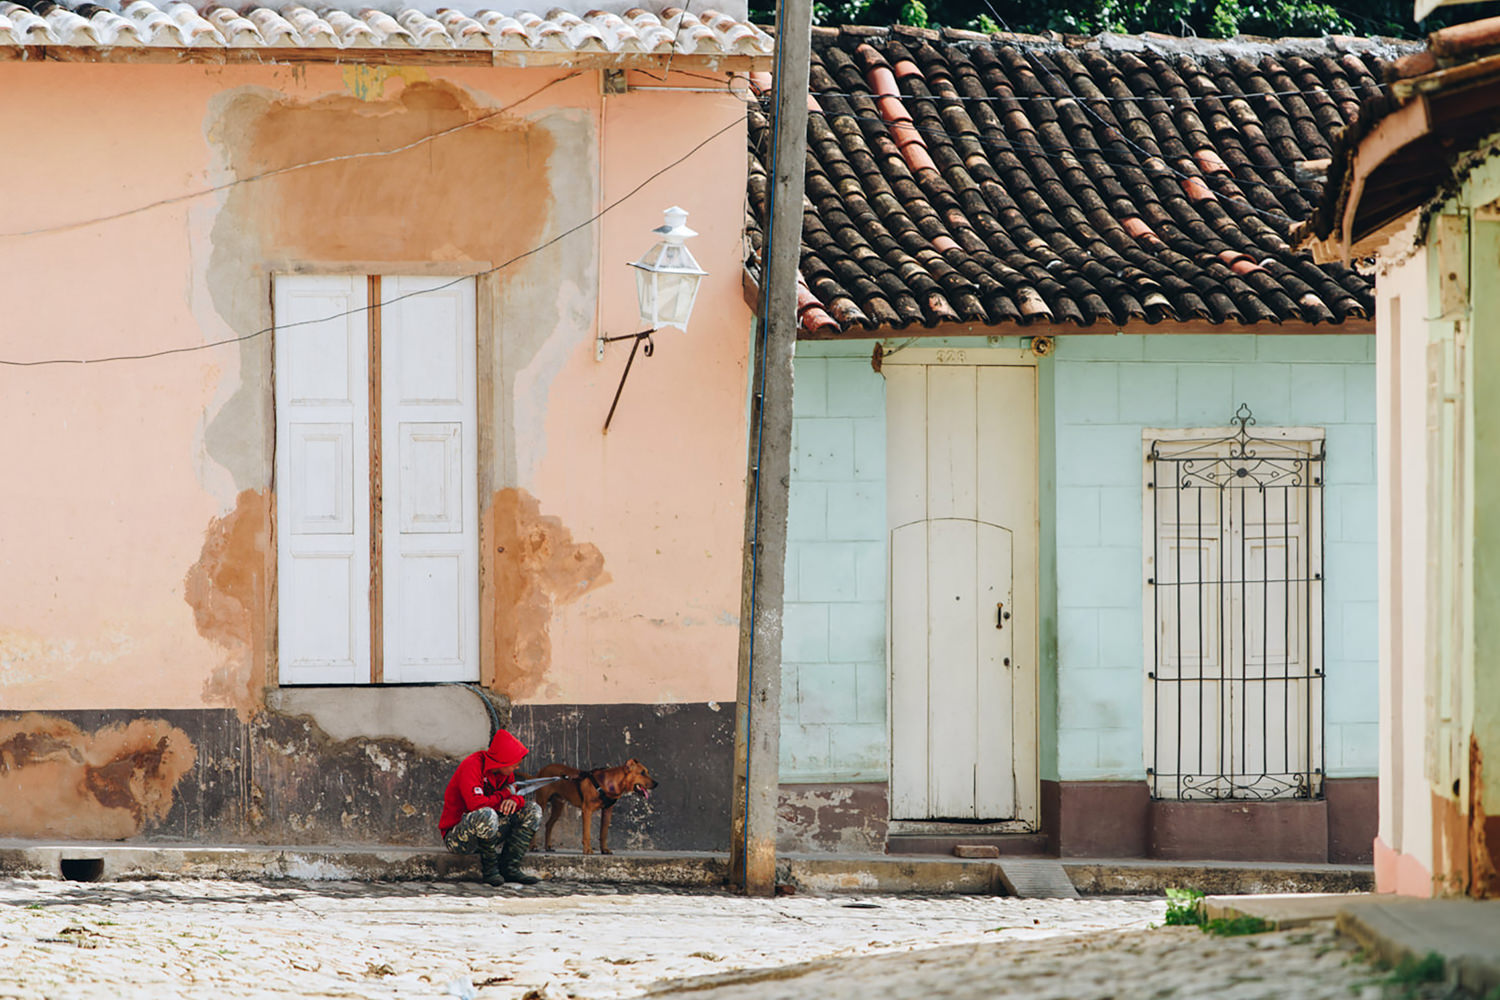 Dog and owner rests in shade on afternoon walk in Cuba